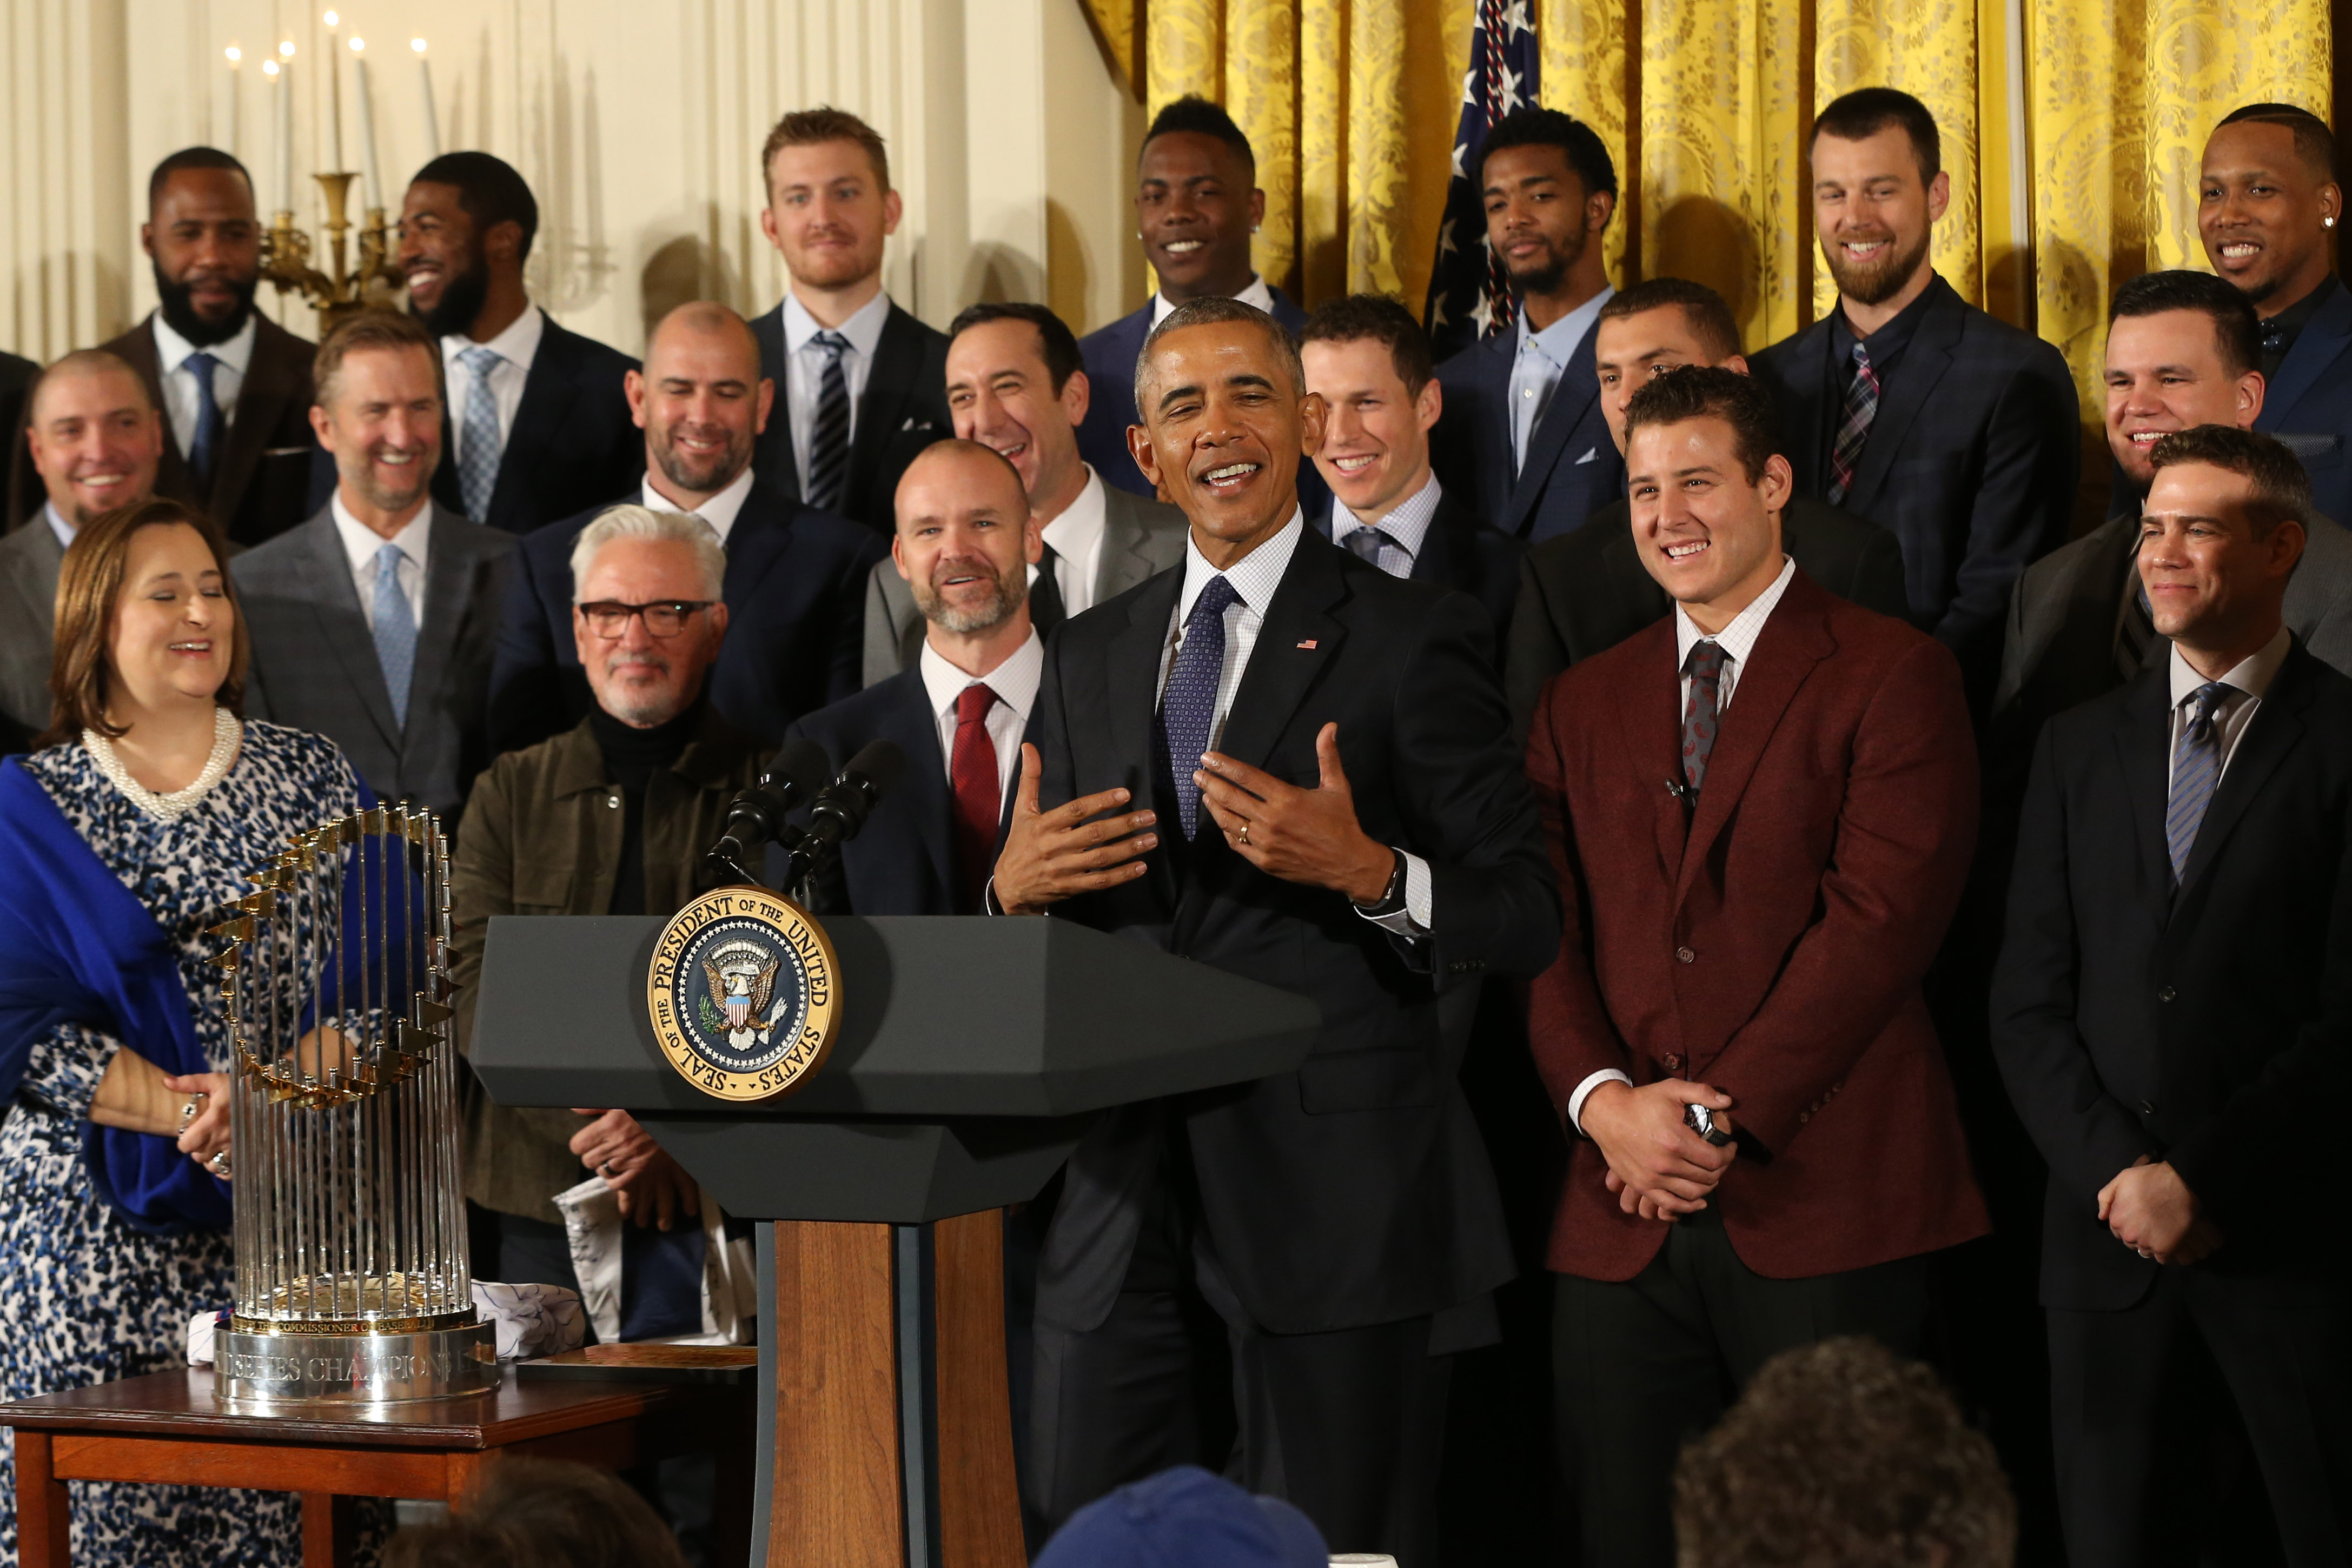 9813579-mlb-world-series-champion-chicago-cubs-white-house-visit